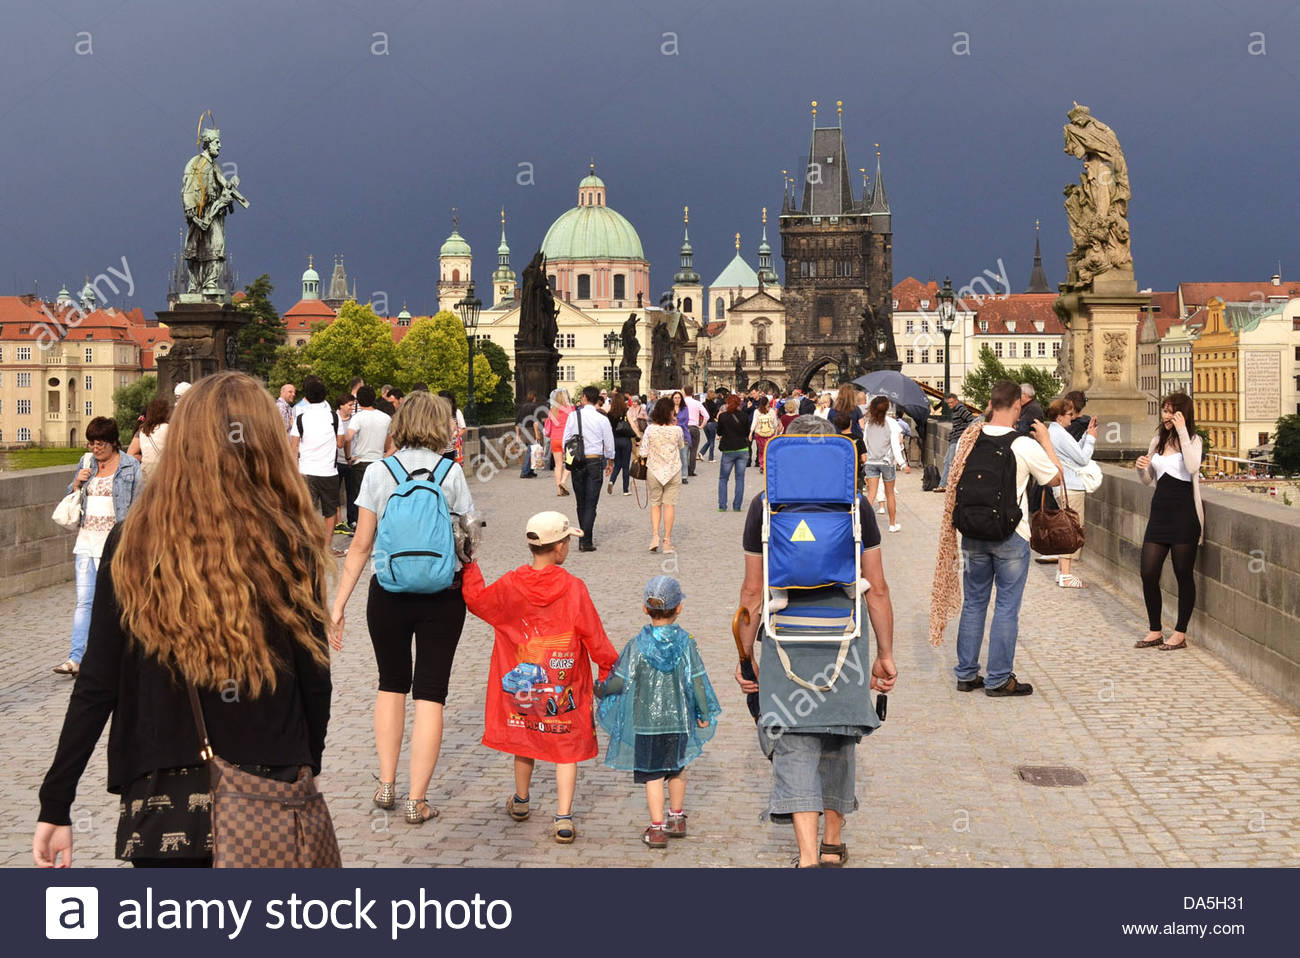 Prague Czech Republic - people walking across the historical Charles Bridge - Stock Image